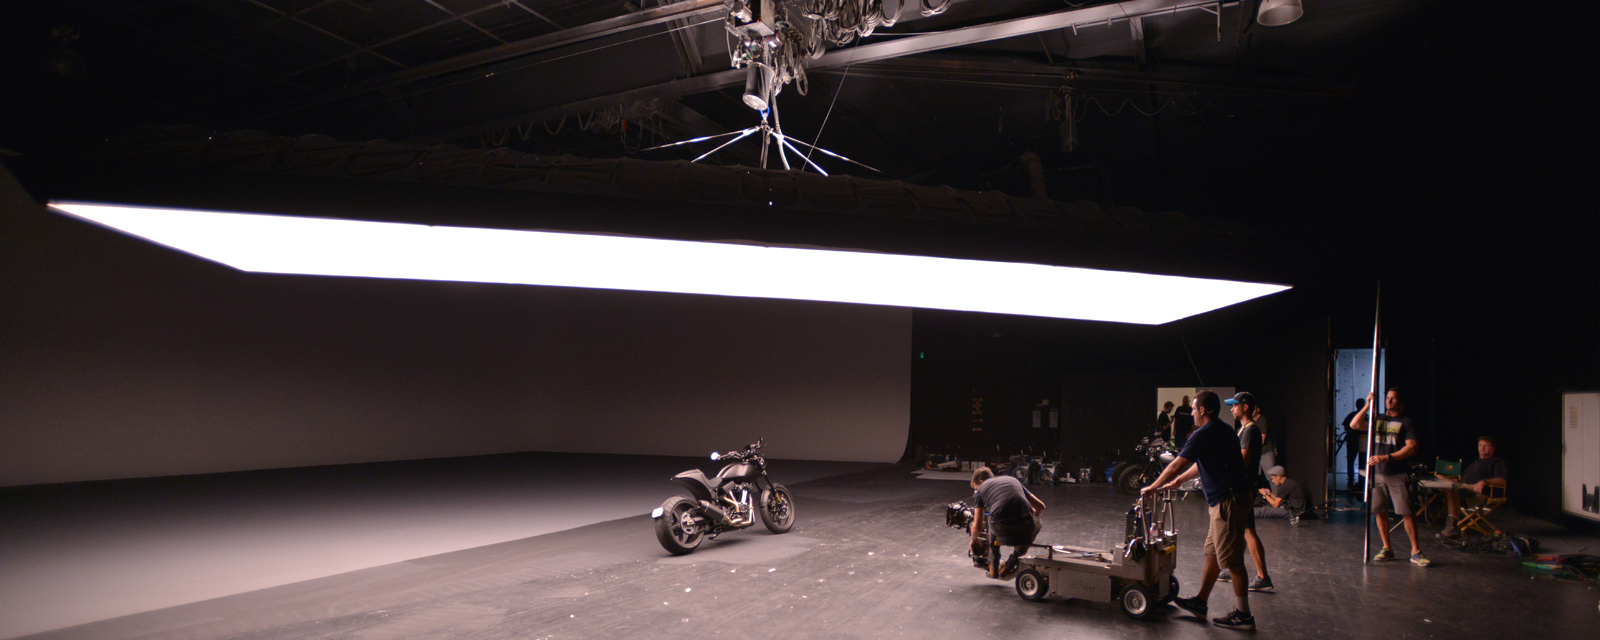 Commercial for Arch Motorcycle, keanu reeves, studio lighting, los angeles, DTLA, geronimo creek